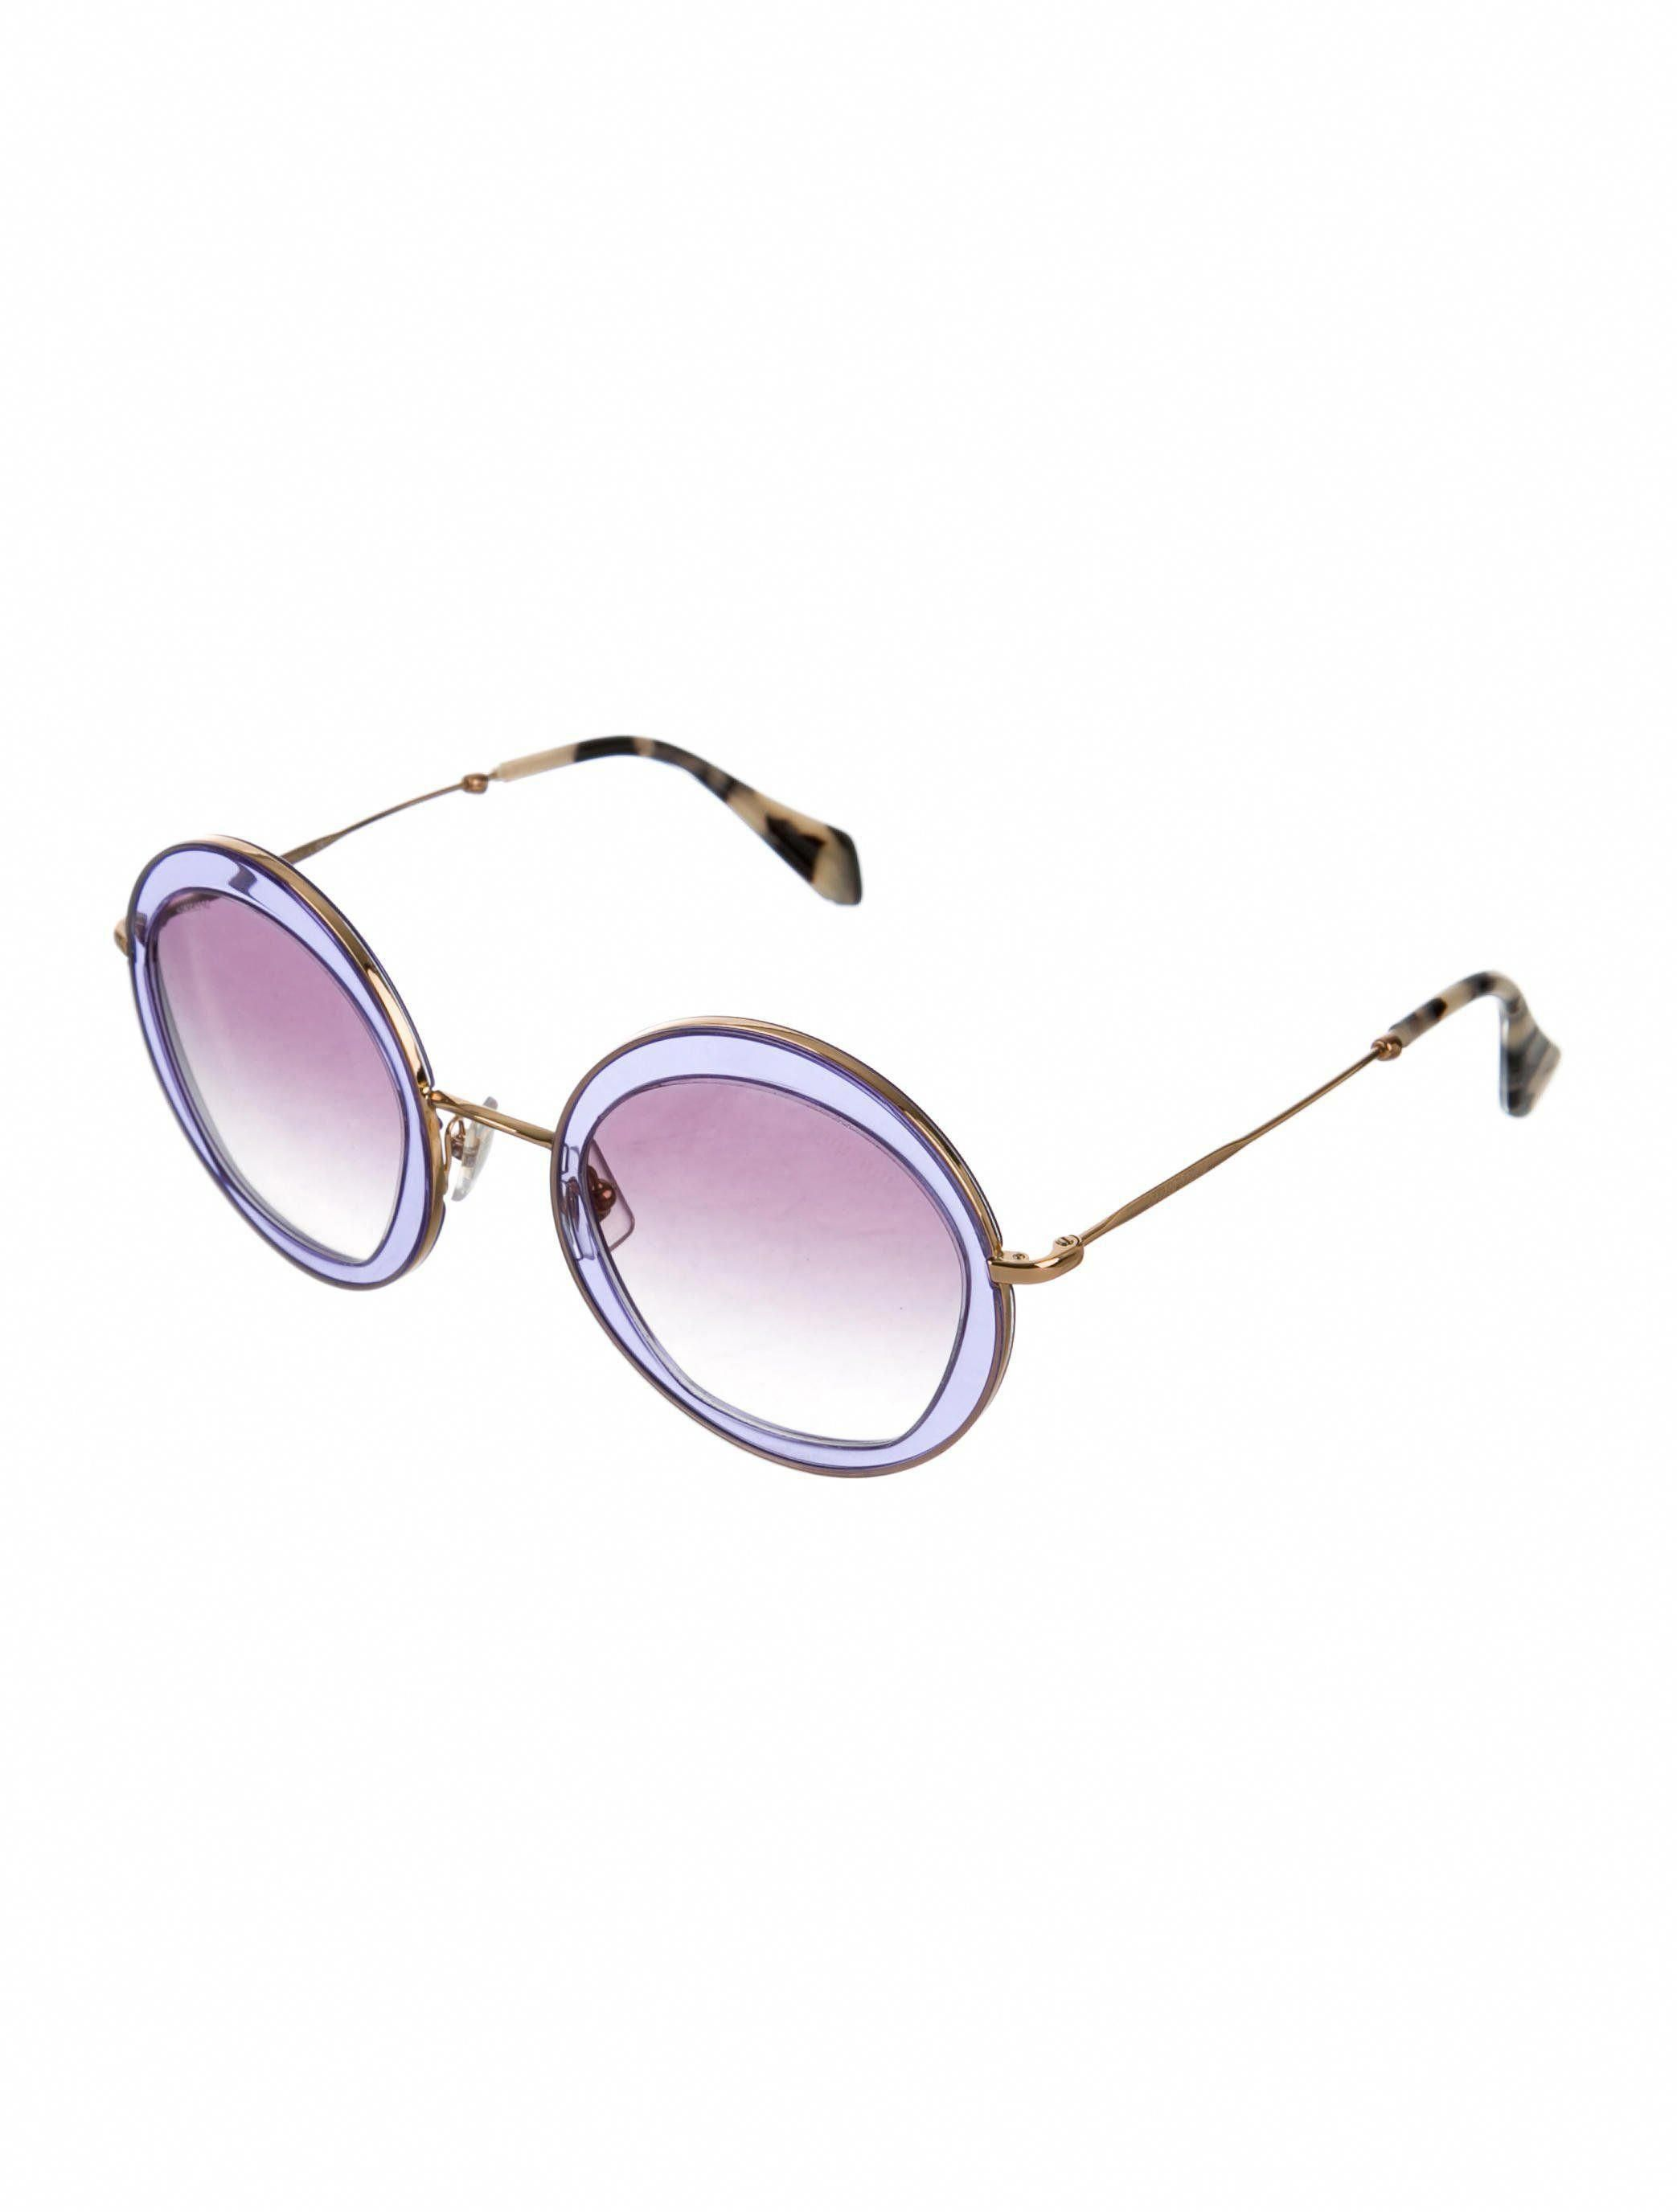 75ac05baa256 Gold-tone Miu Miu round sunglasses with tinted lenses featuring abstract  print at trim and logo at arms. Includes case and dust cloth.  MiuMiu